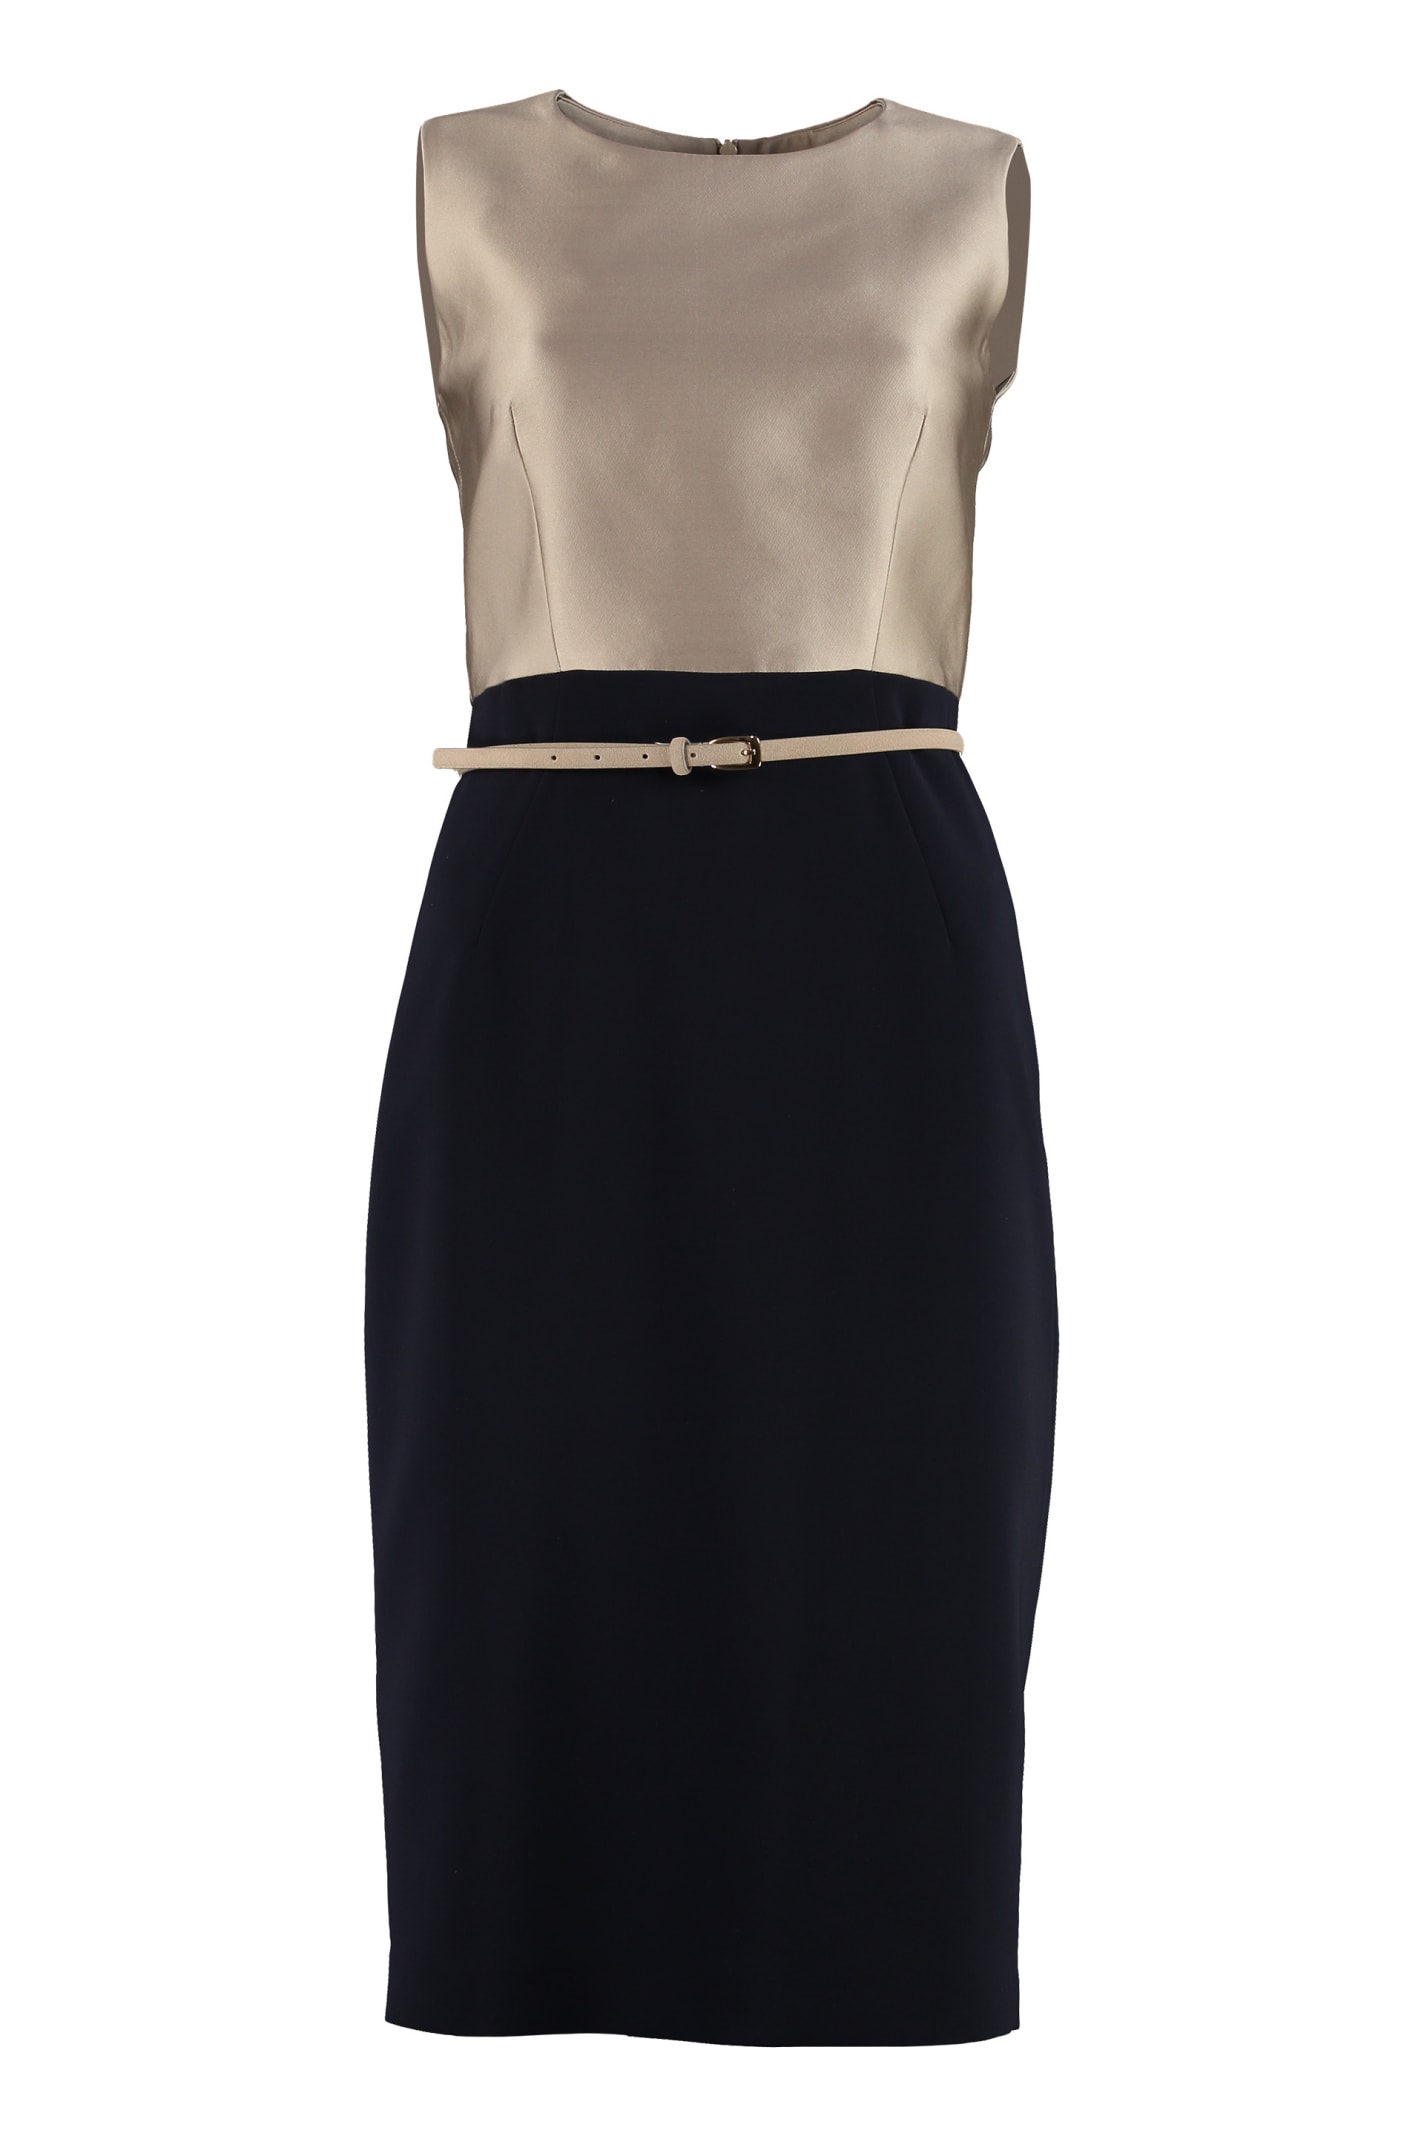 Max Mara Studio Fiorito Belted Sheath Dress